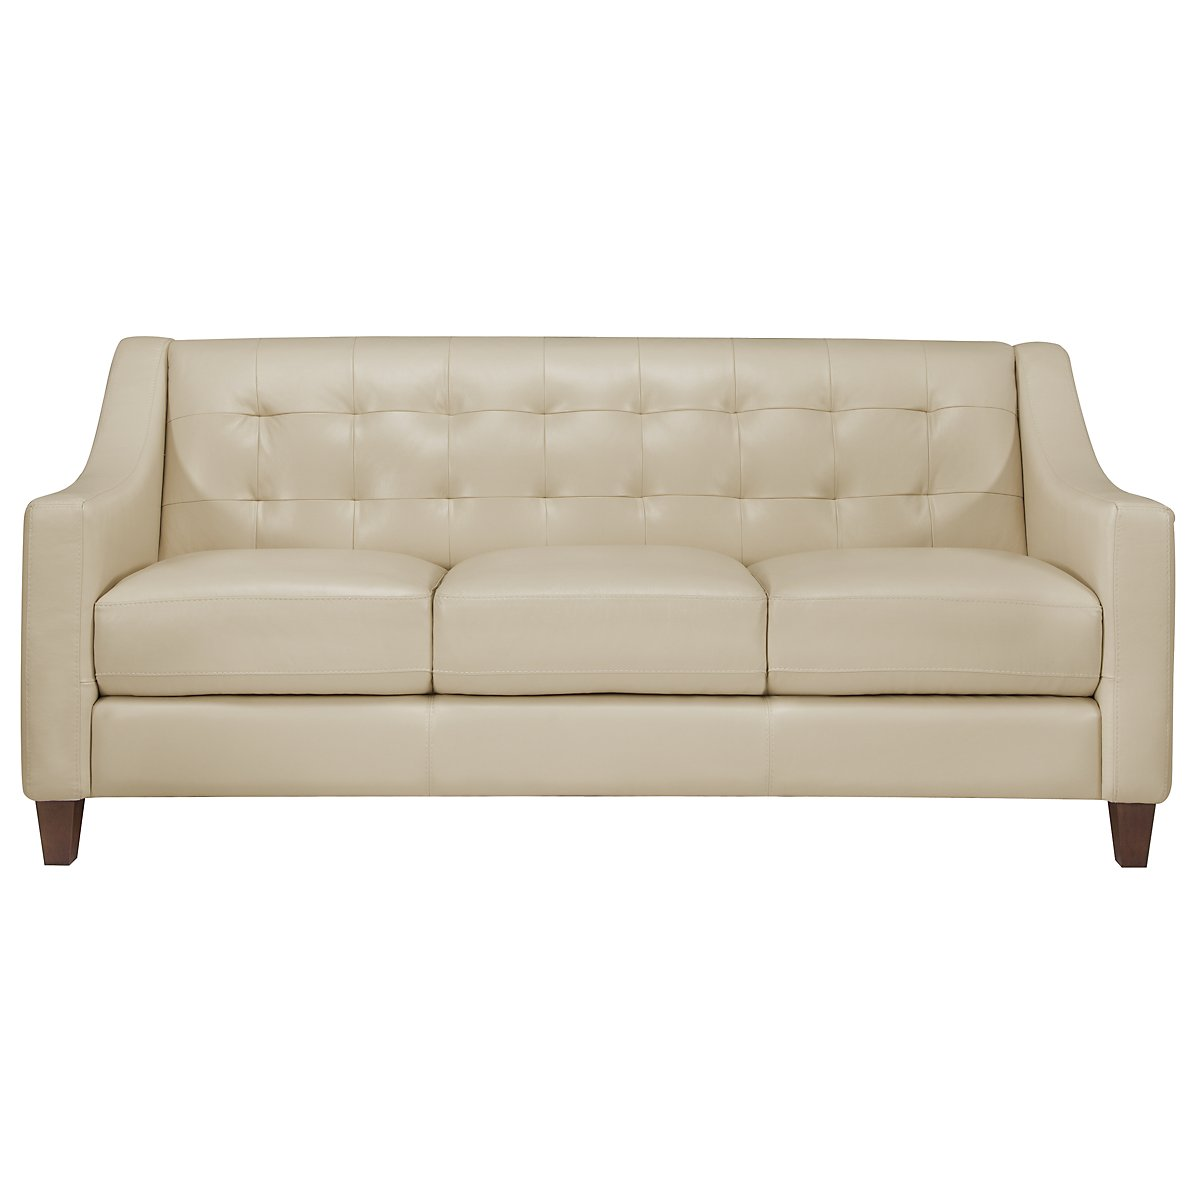 Elise Light Taupe Leather Sofa